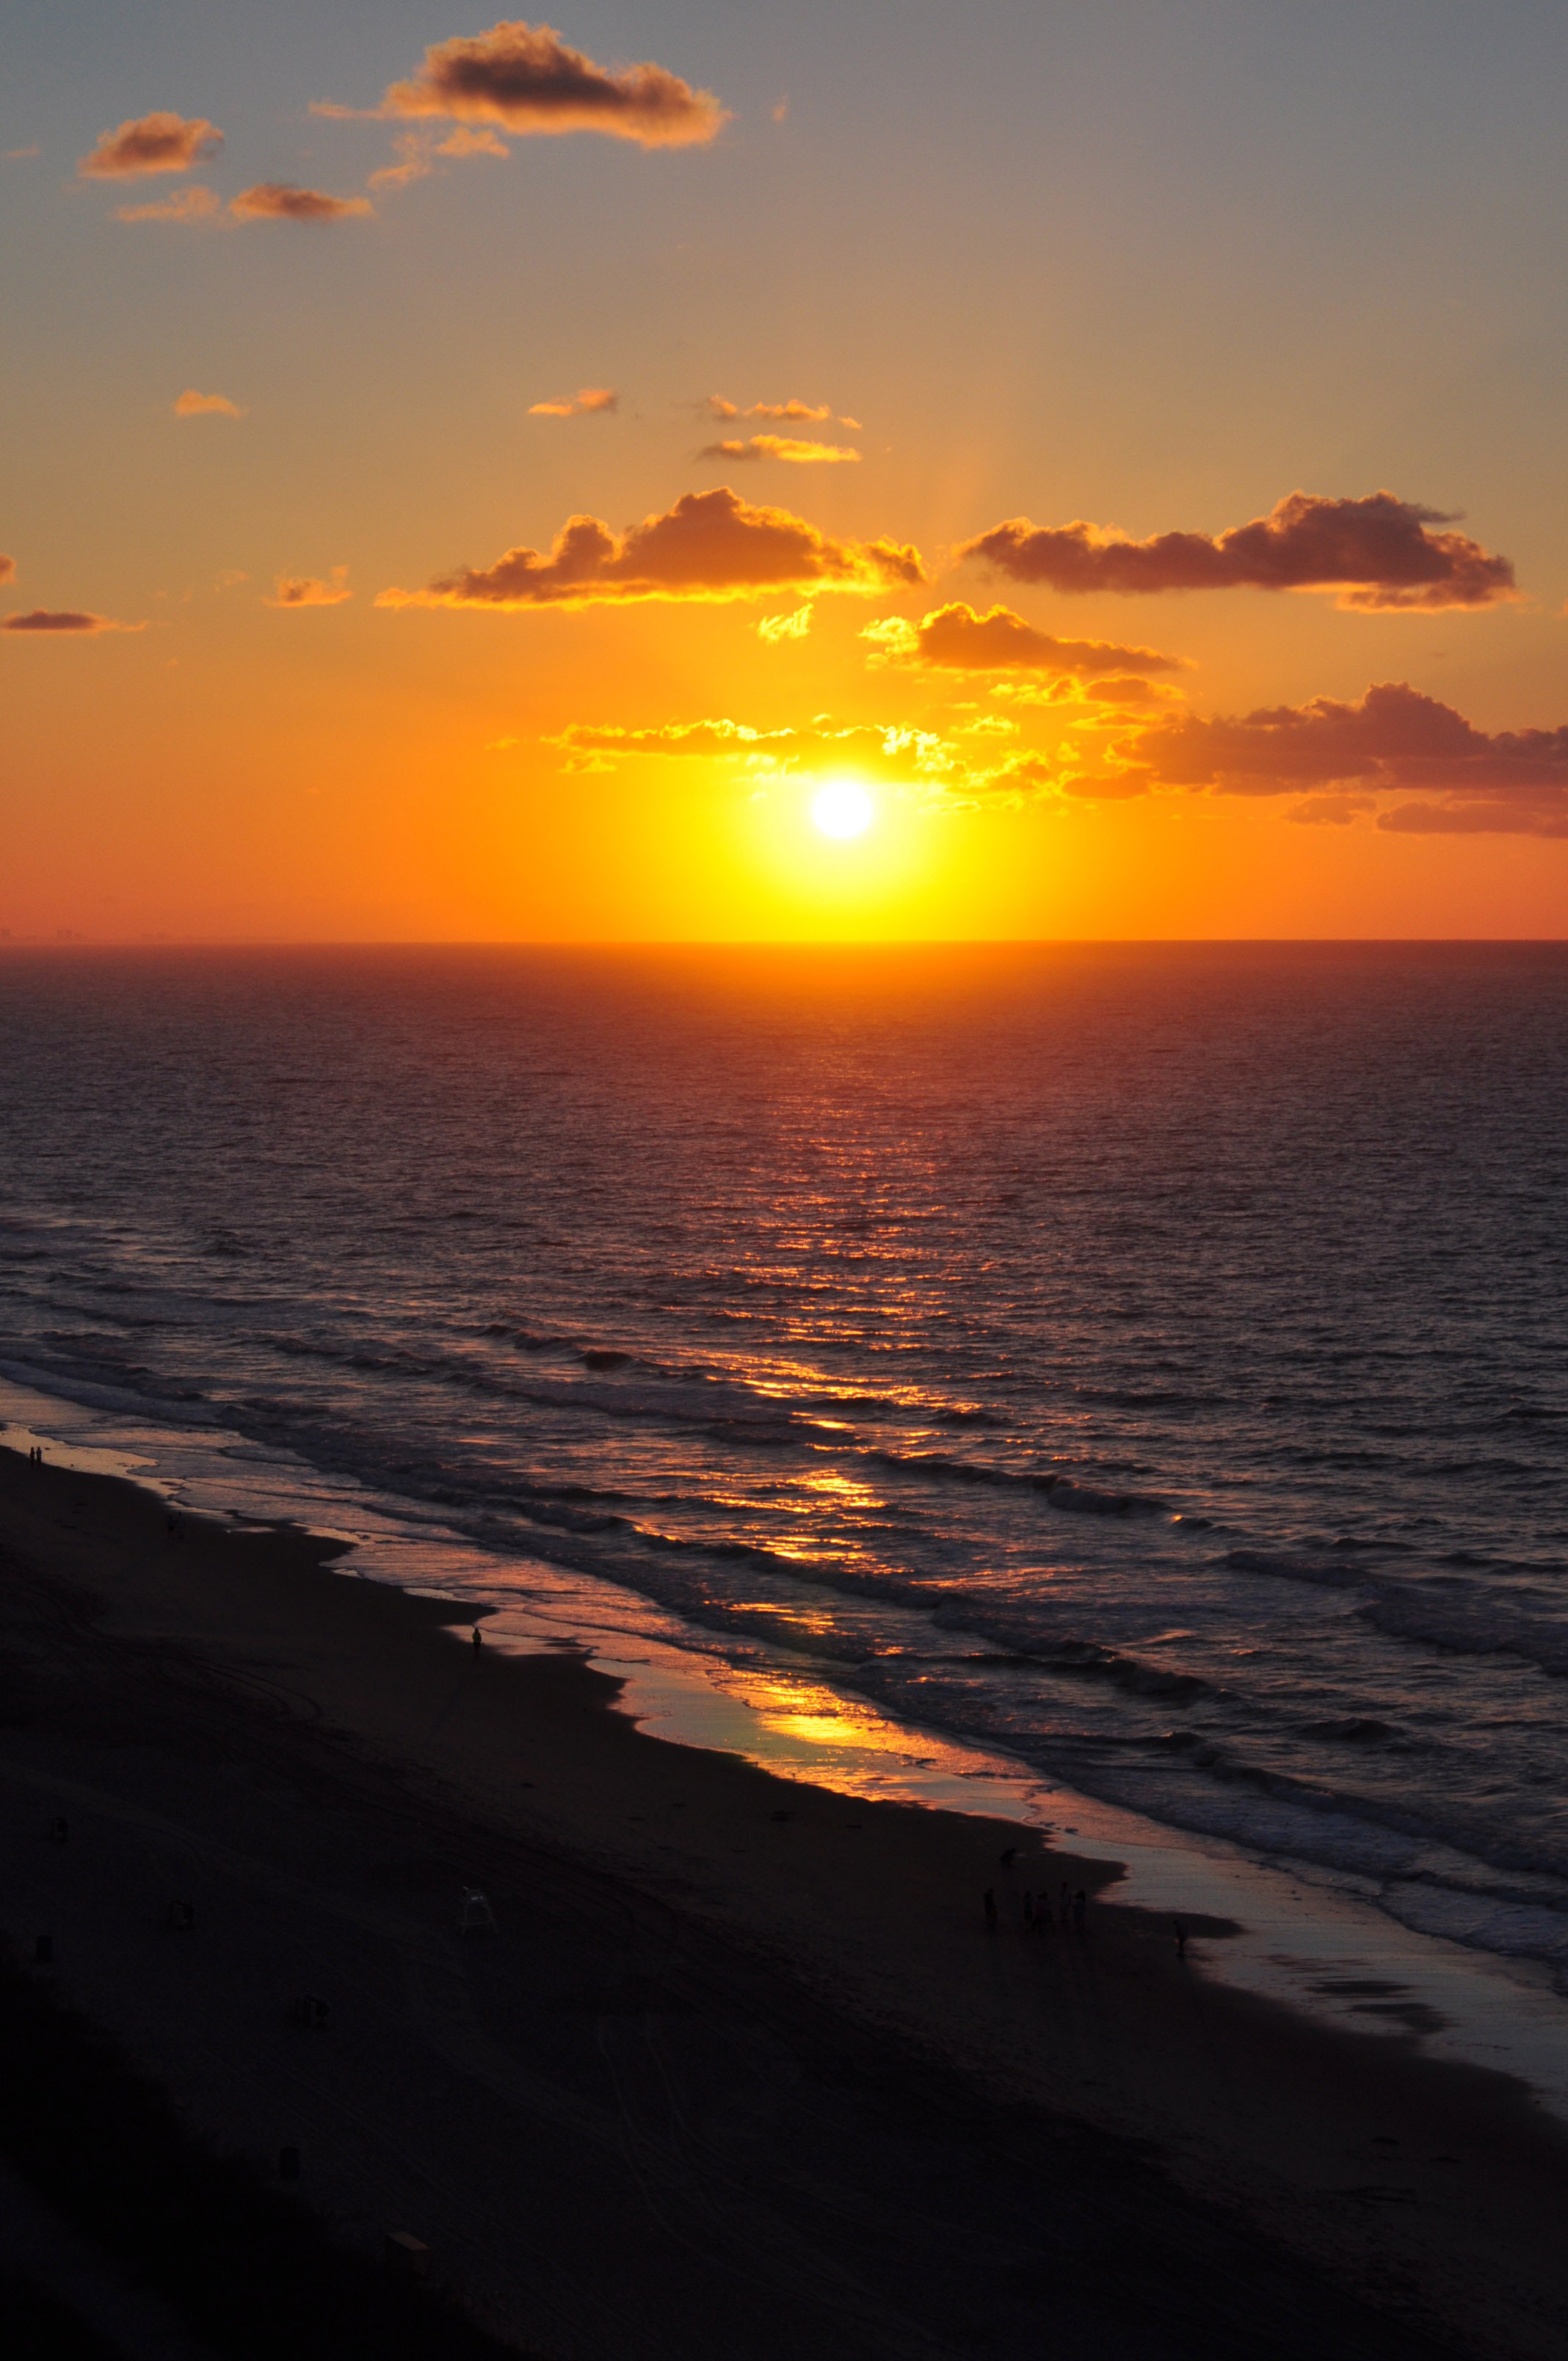 sunset-at-myrtle-beach-south-carolina.jpg